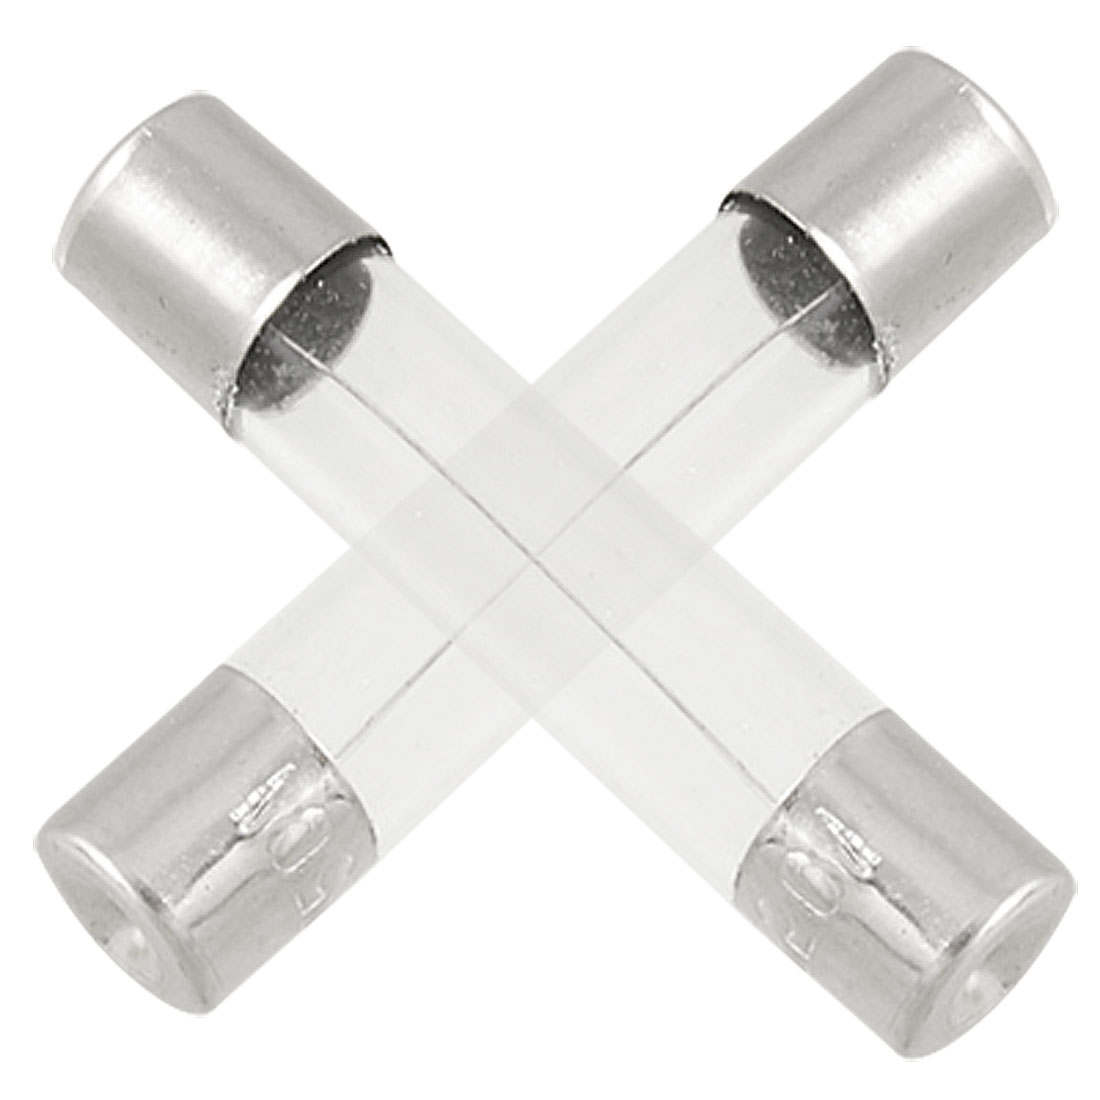 100 x 250A 3A 6 x 30mm Cylinder Glass Tube Fuses Fast Blow